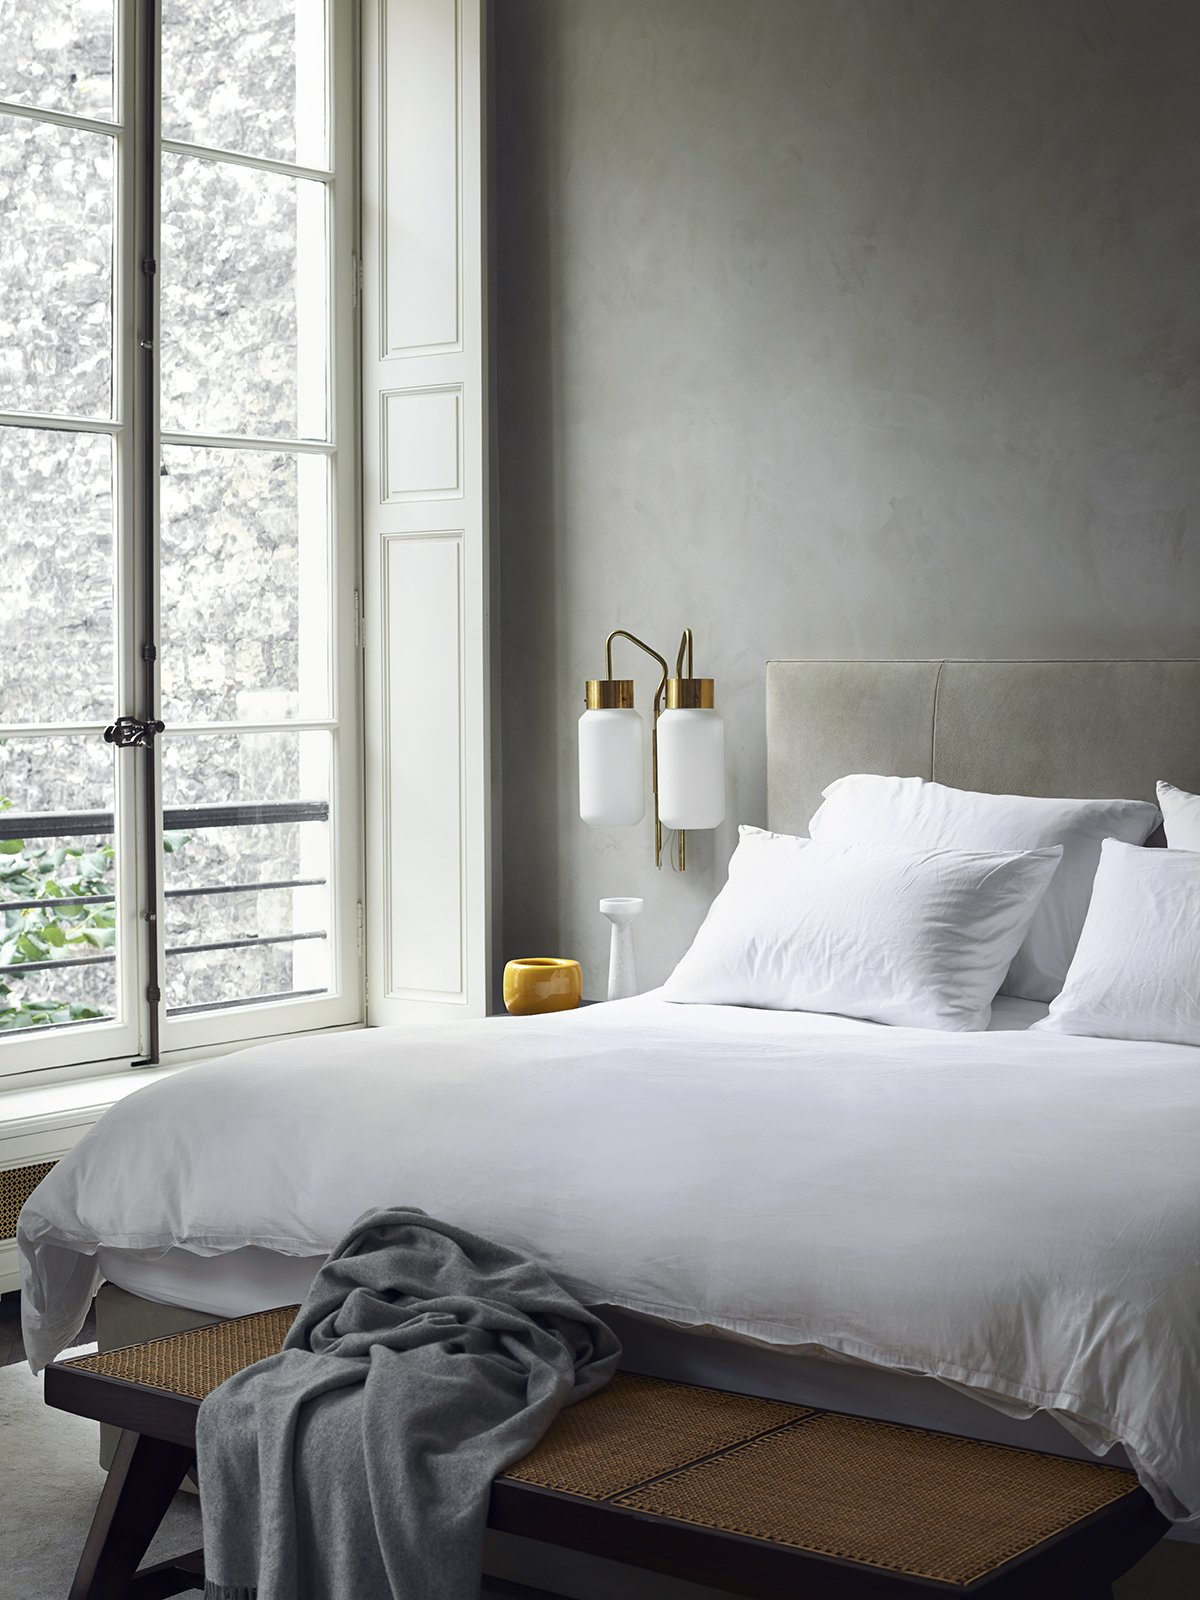 Architect Joseph Dirand's bedroom boasts sandy gray walls and upholstered headboard. The white bed linens help reflect daylight into the space and the Azucena sconces offer task illumination. Tagged: Bedroom, Bench, Bed, and Wall Lighting.  Monochromatic Color Palettes Are the Ultimate Modern Design Tool by Diana Budds